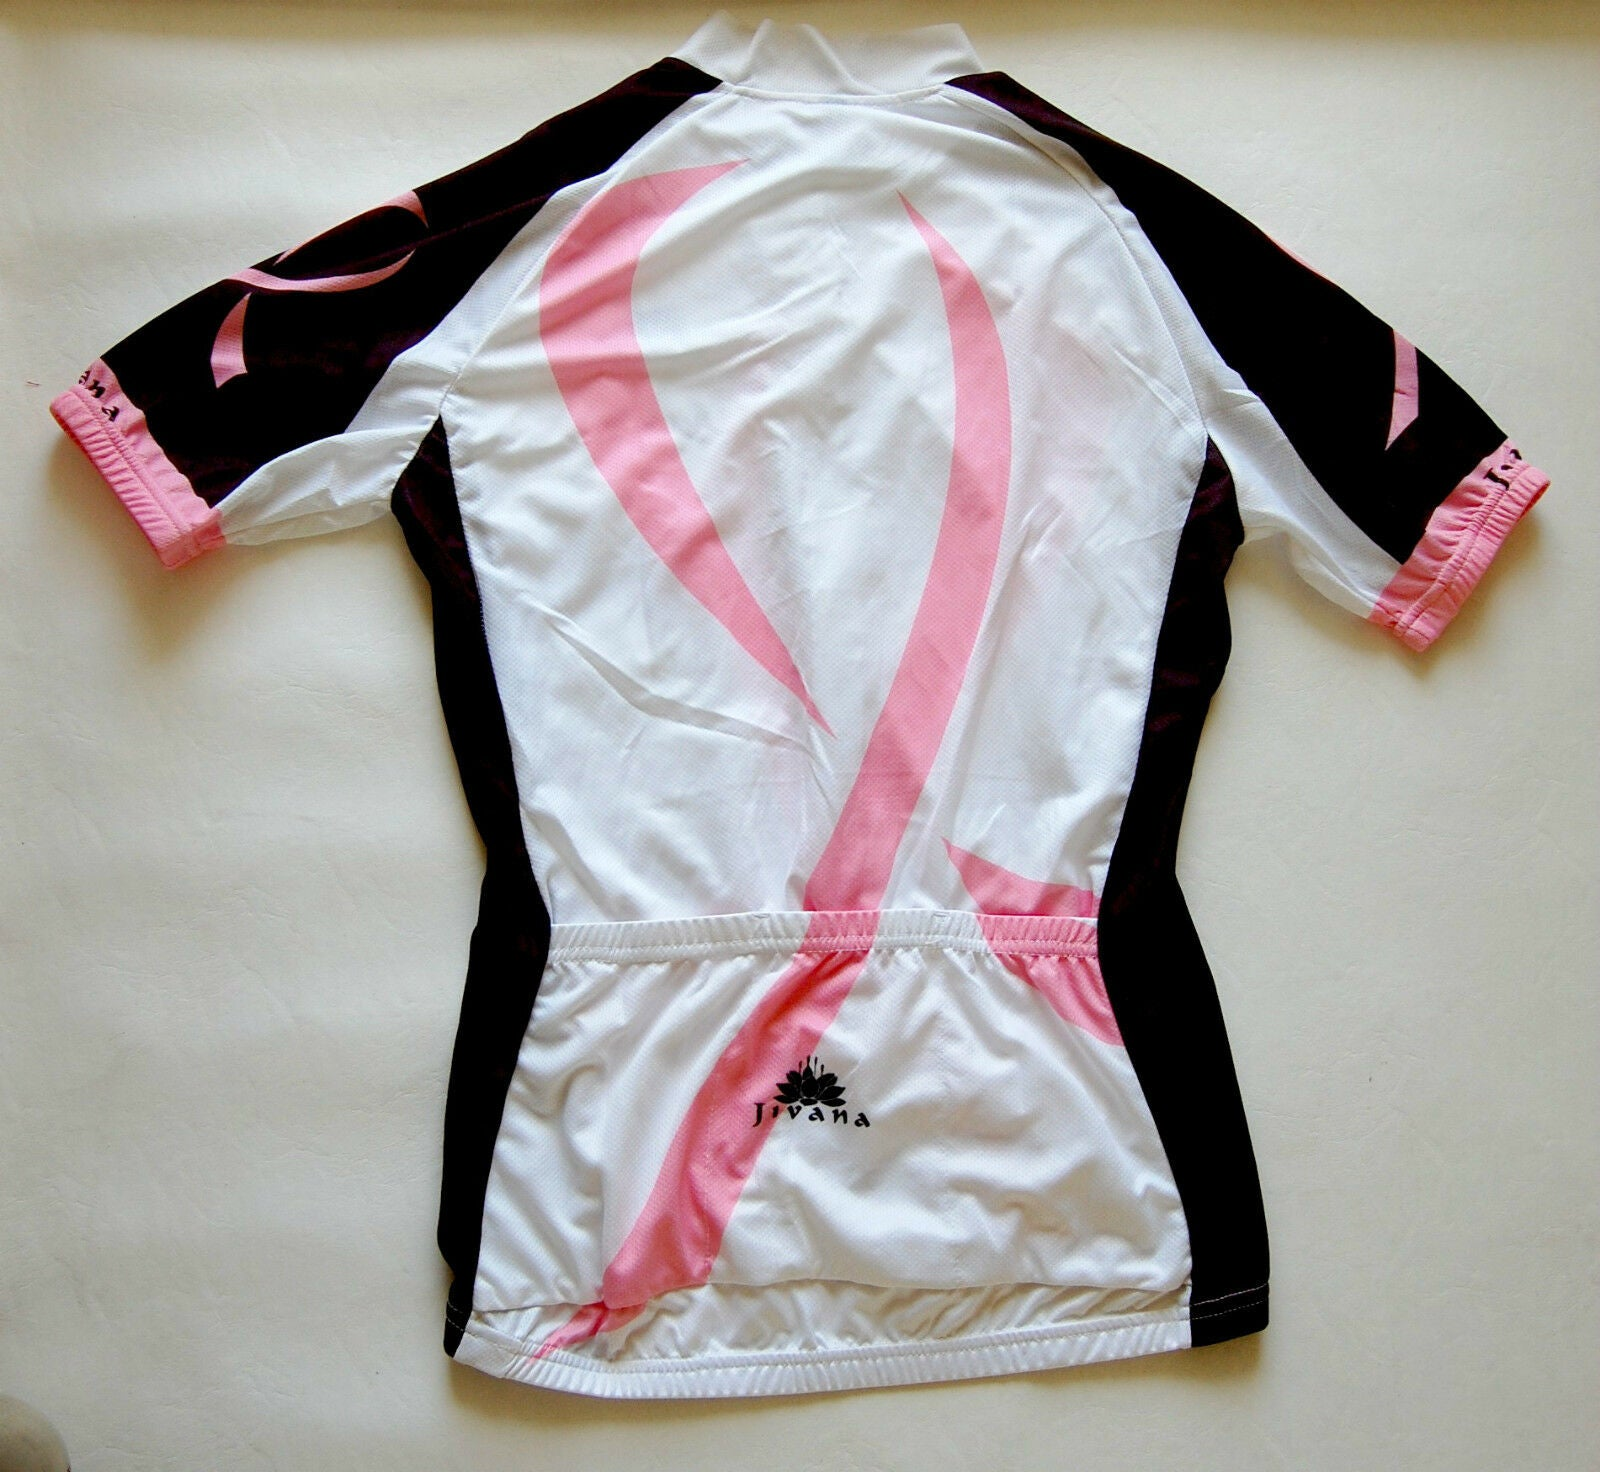 Cycling Sport Clothing Jersey & Pant Short set Ladies, Women (pink & black)